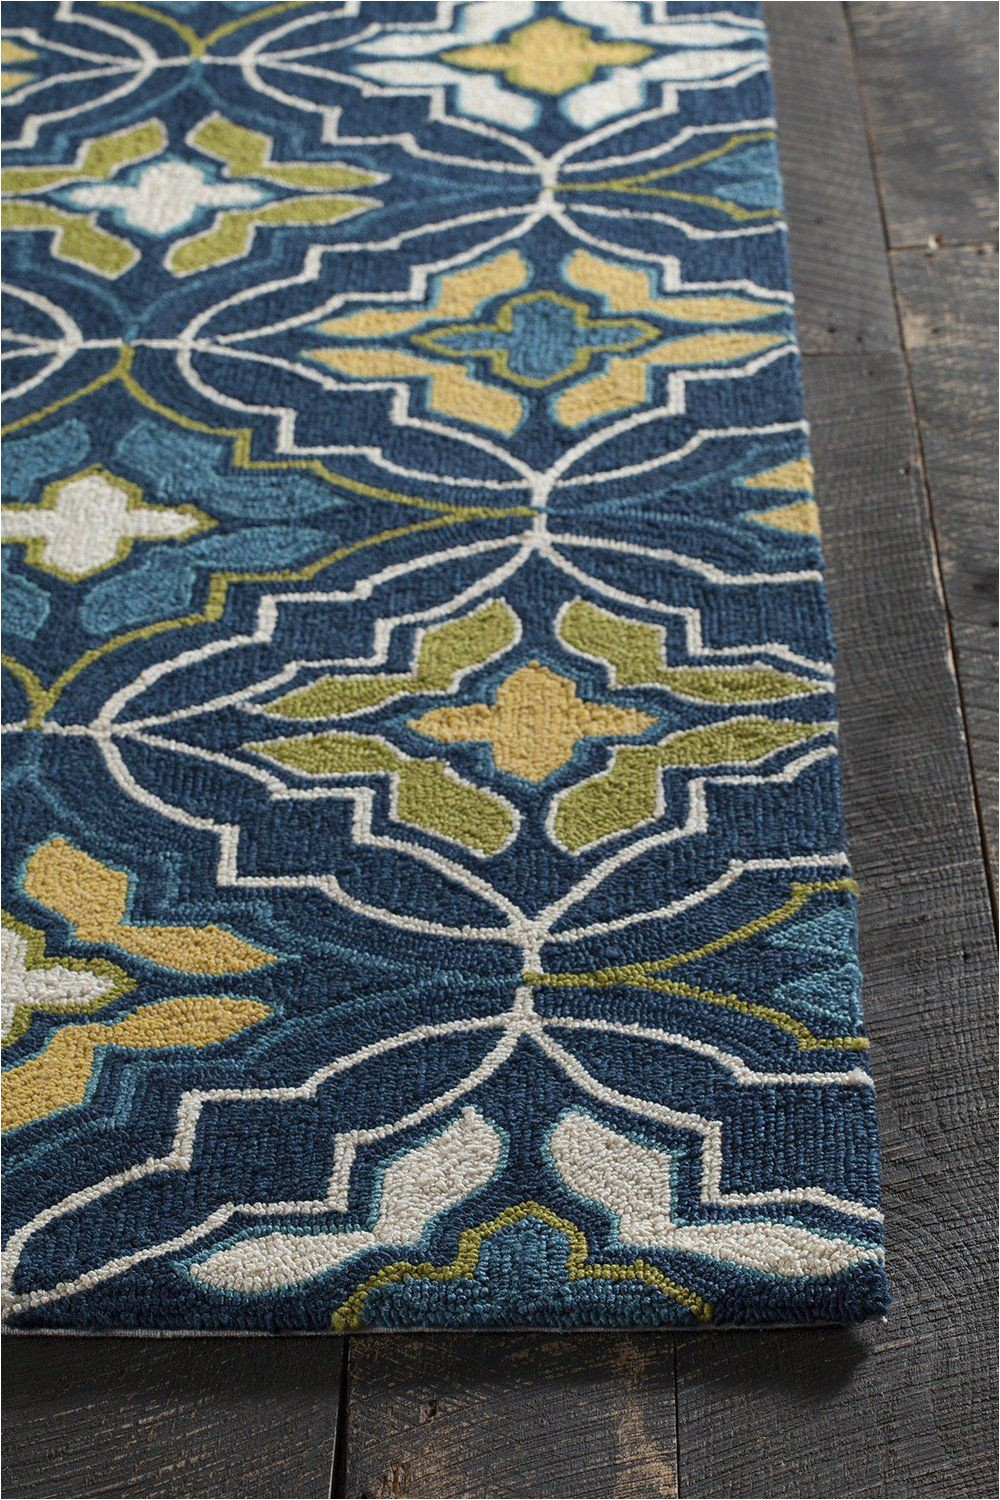 Kujawa Blue area Rug Yellow and Gray at Rug Studio Pertaining to Blue area Rugs